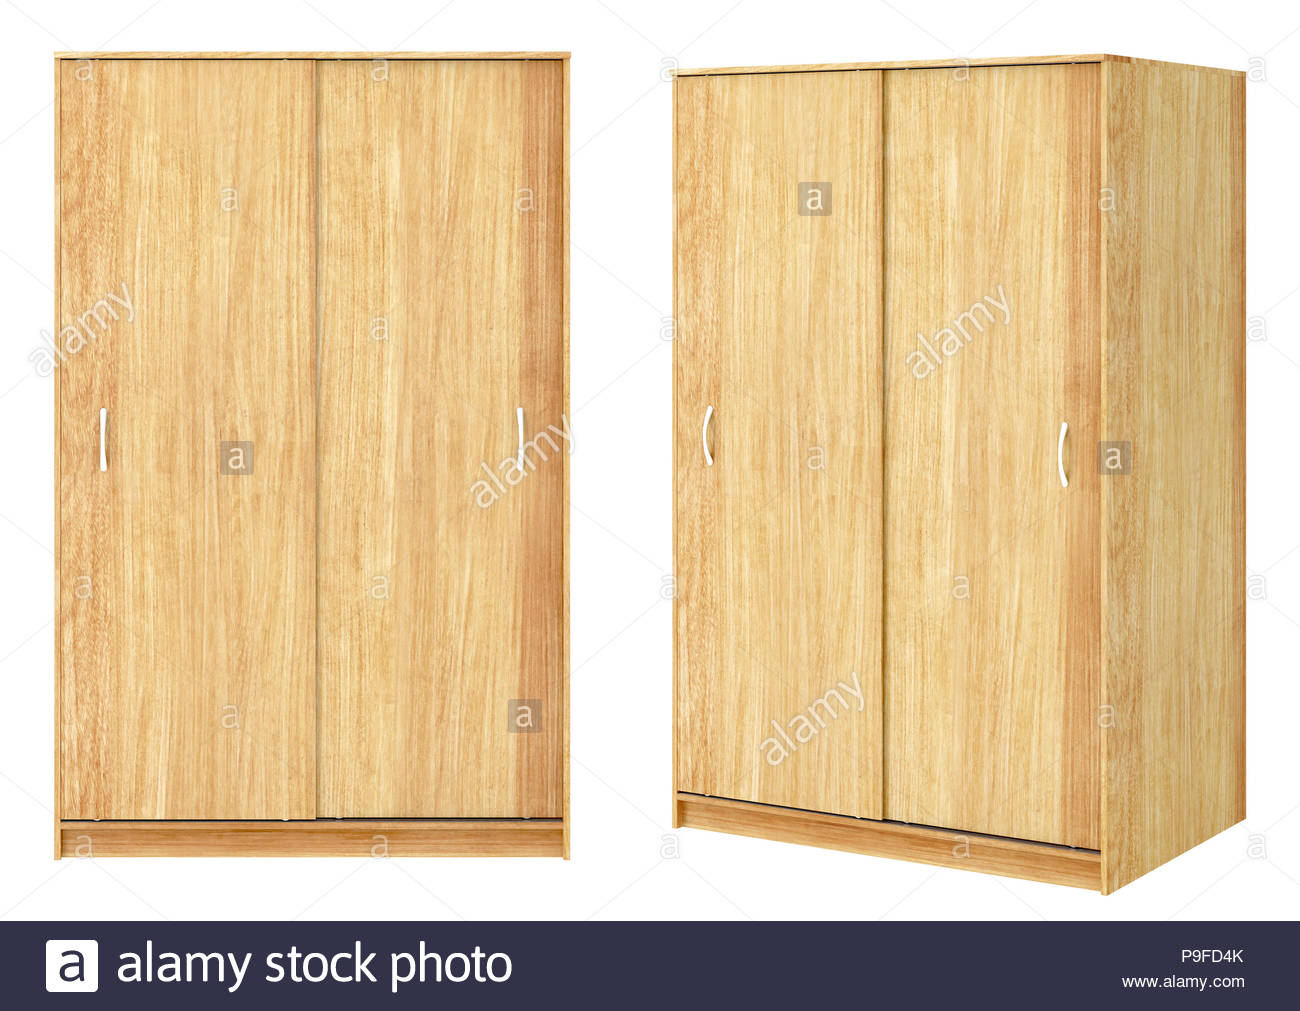 Two views of wooden wardrobe with closed sliding doors isolated on 1300x1011